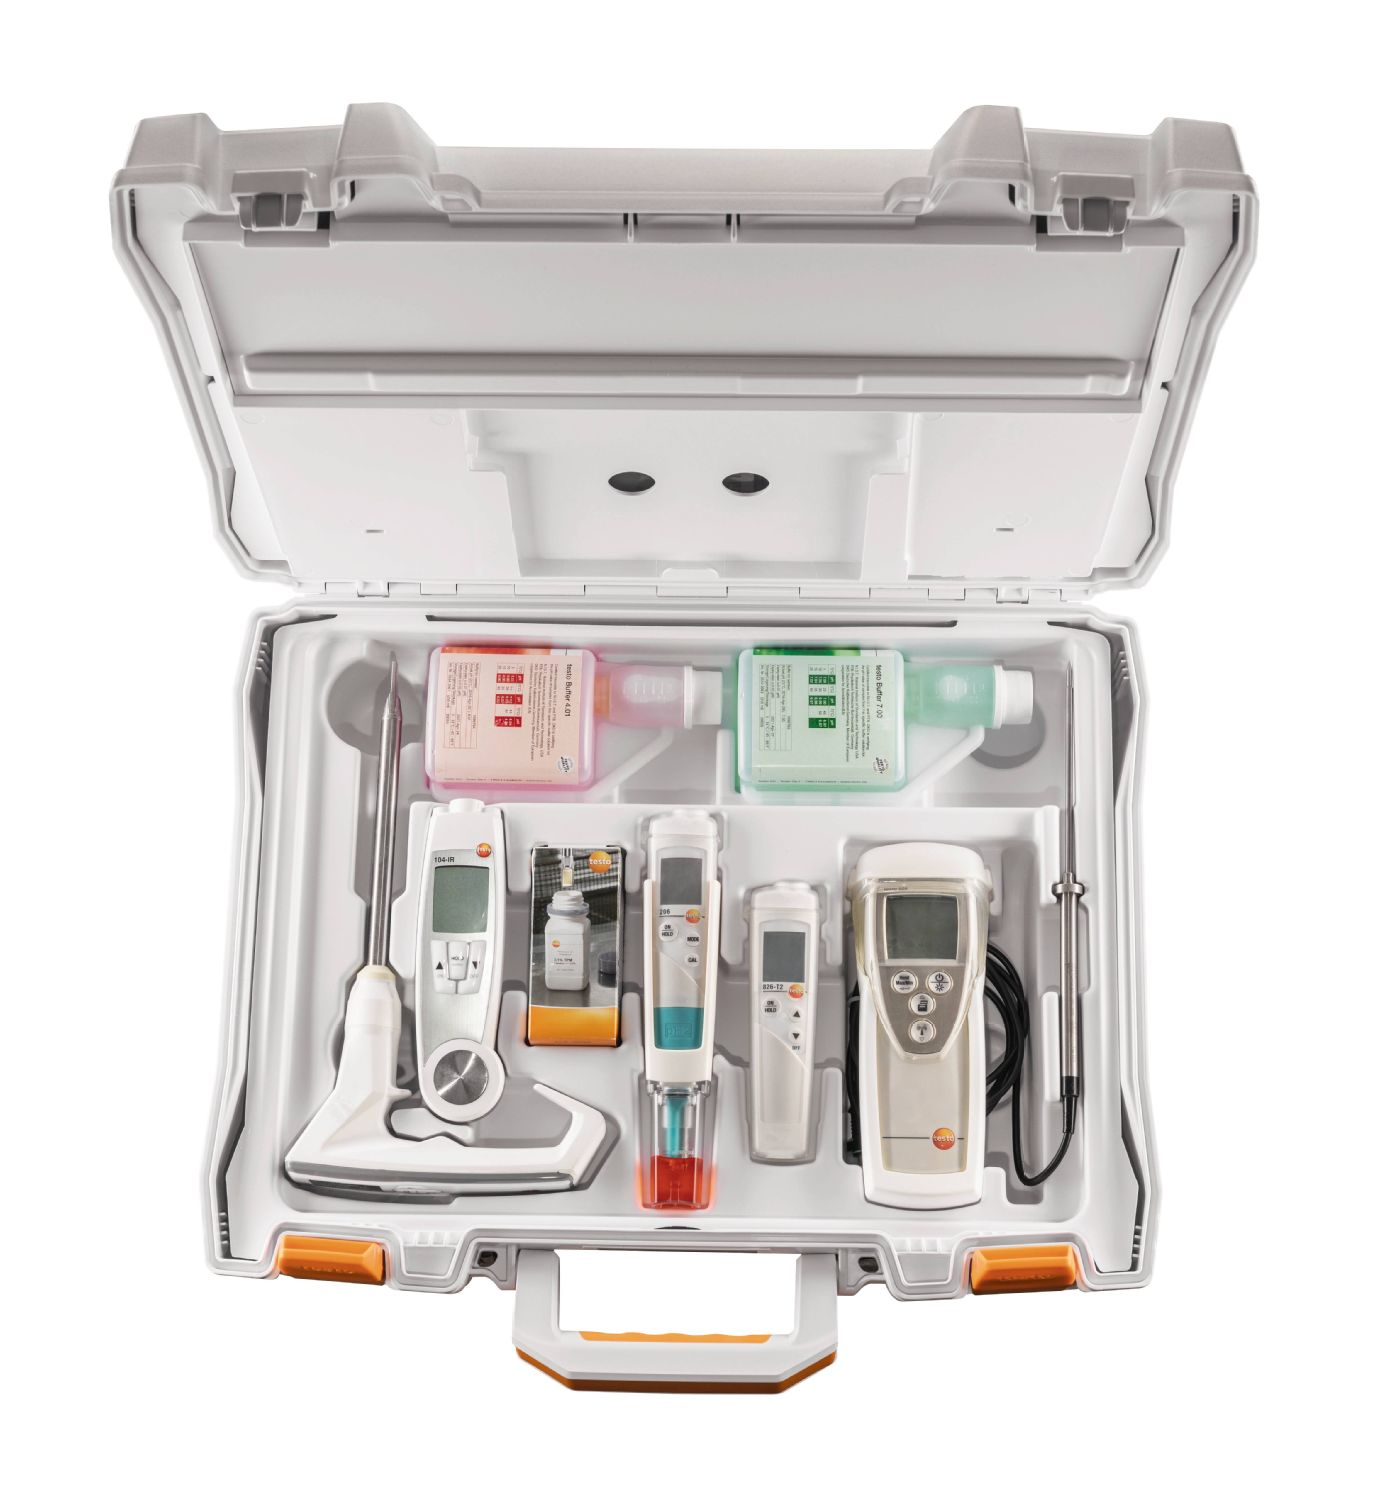 Food inspection kit